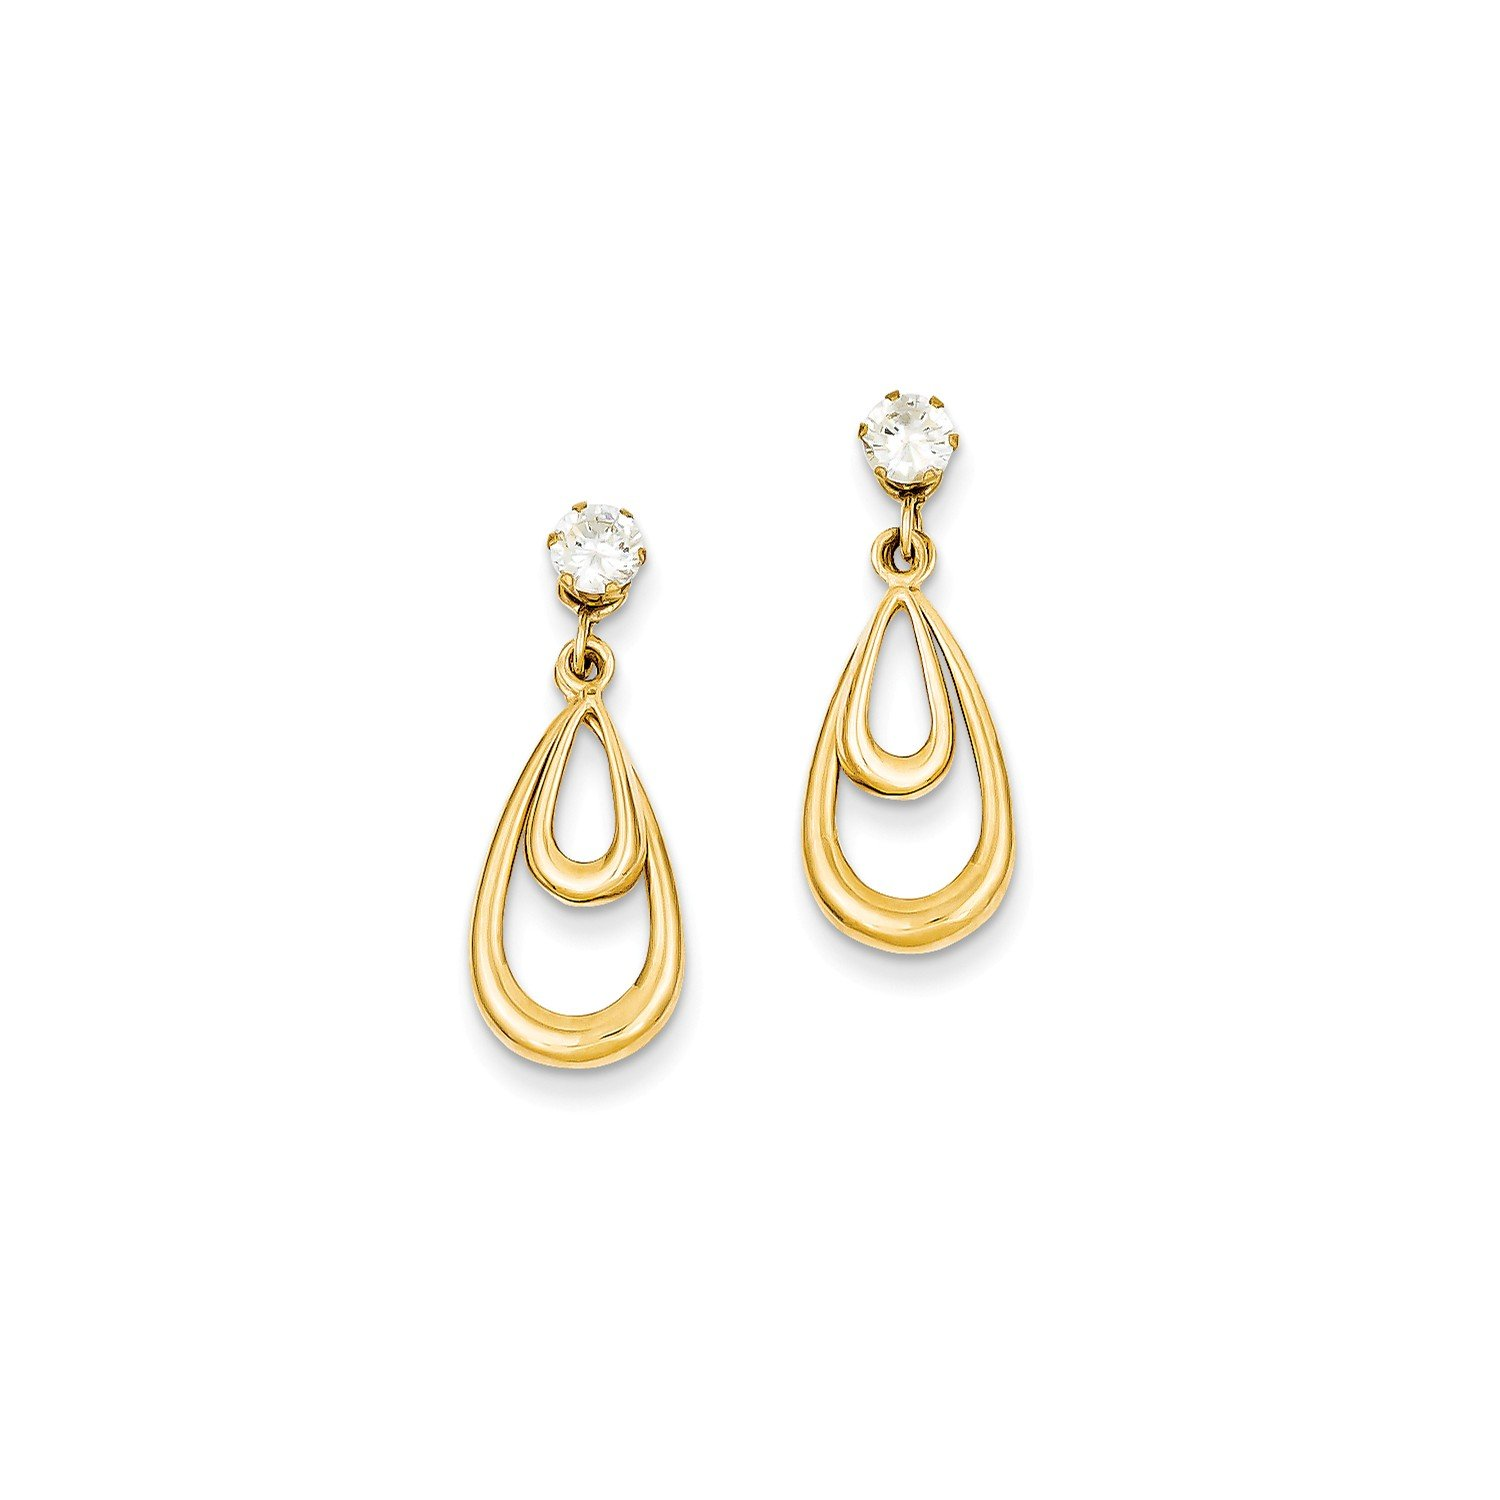 Roy Rose Jewelry 14K Yellow Gold Yellow Gold Polished w/CZ Stud Earring Jackets by Roy Rose Jewelry